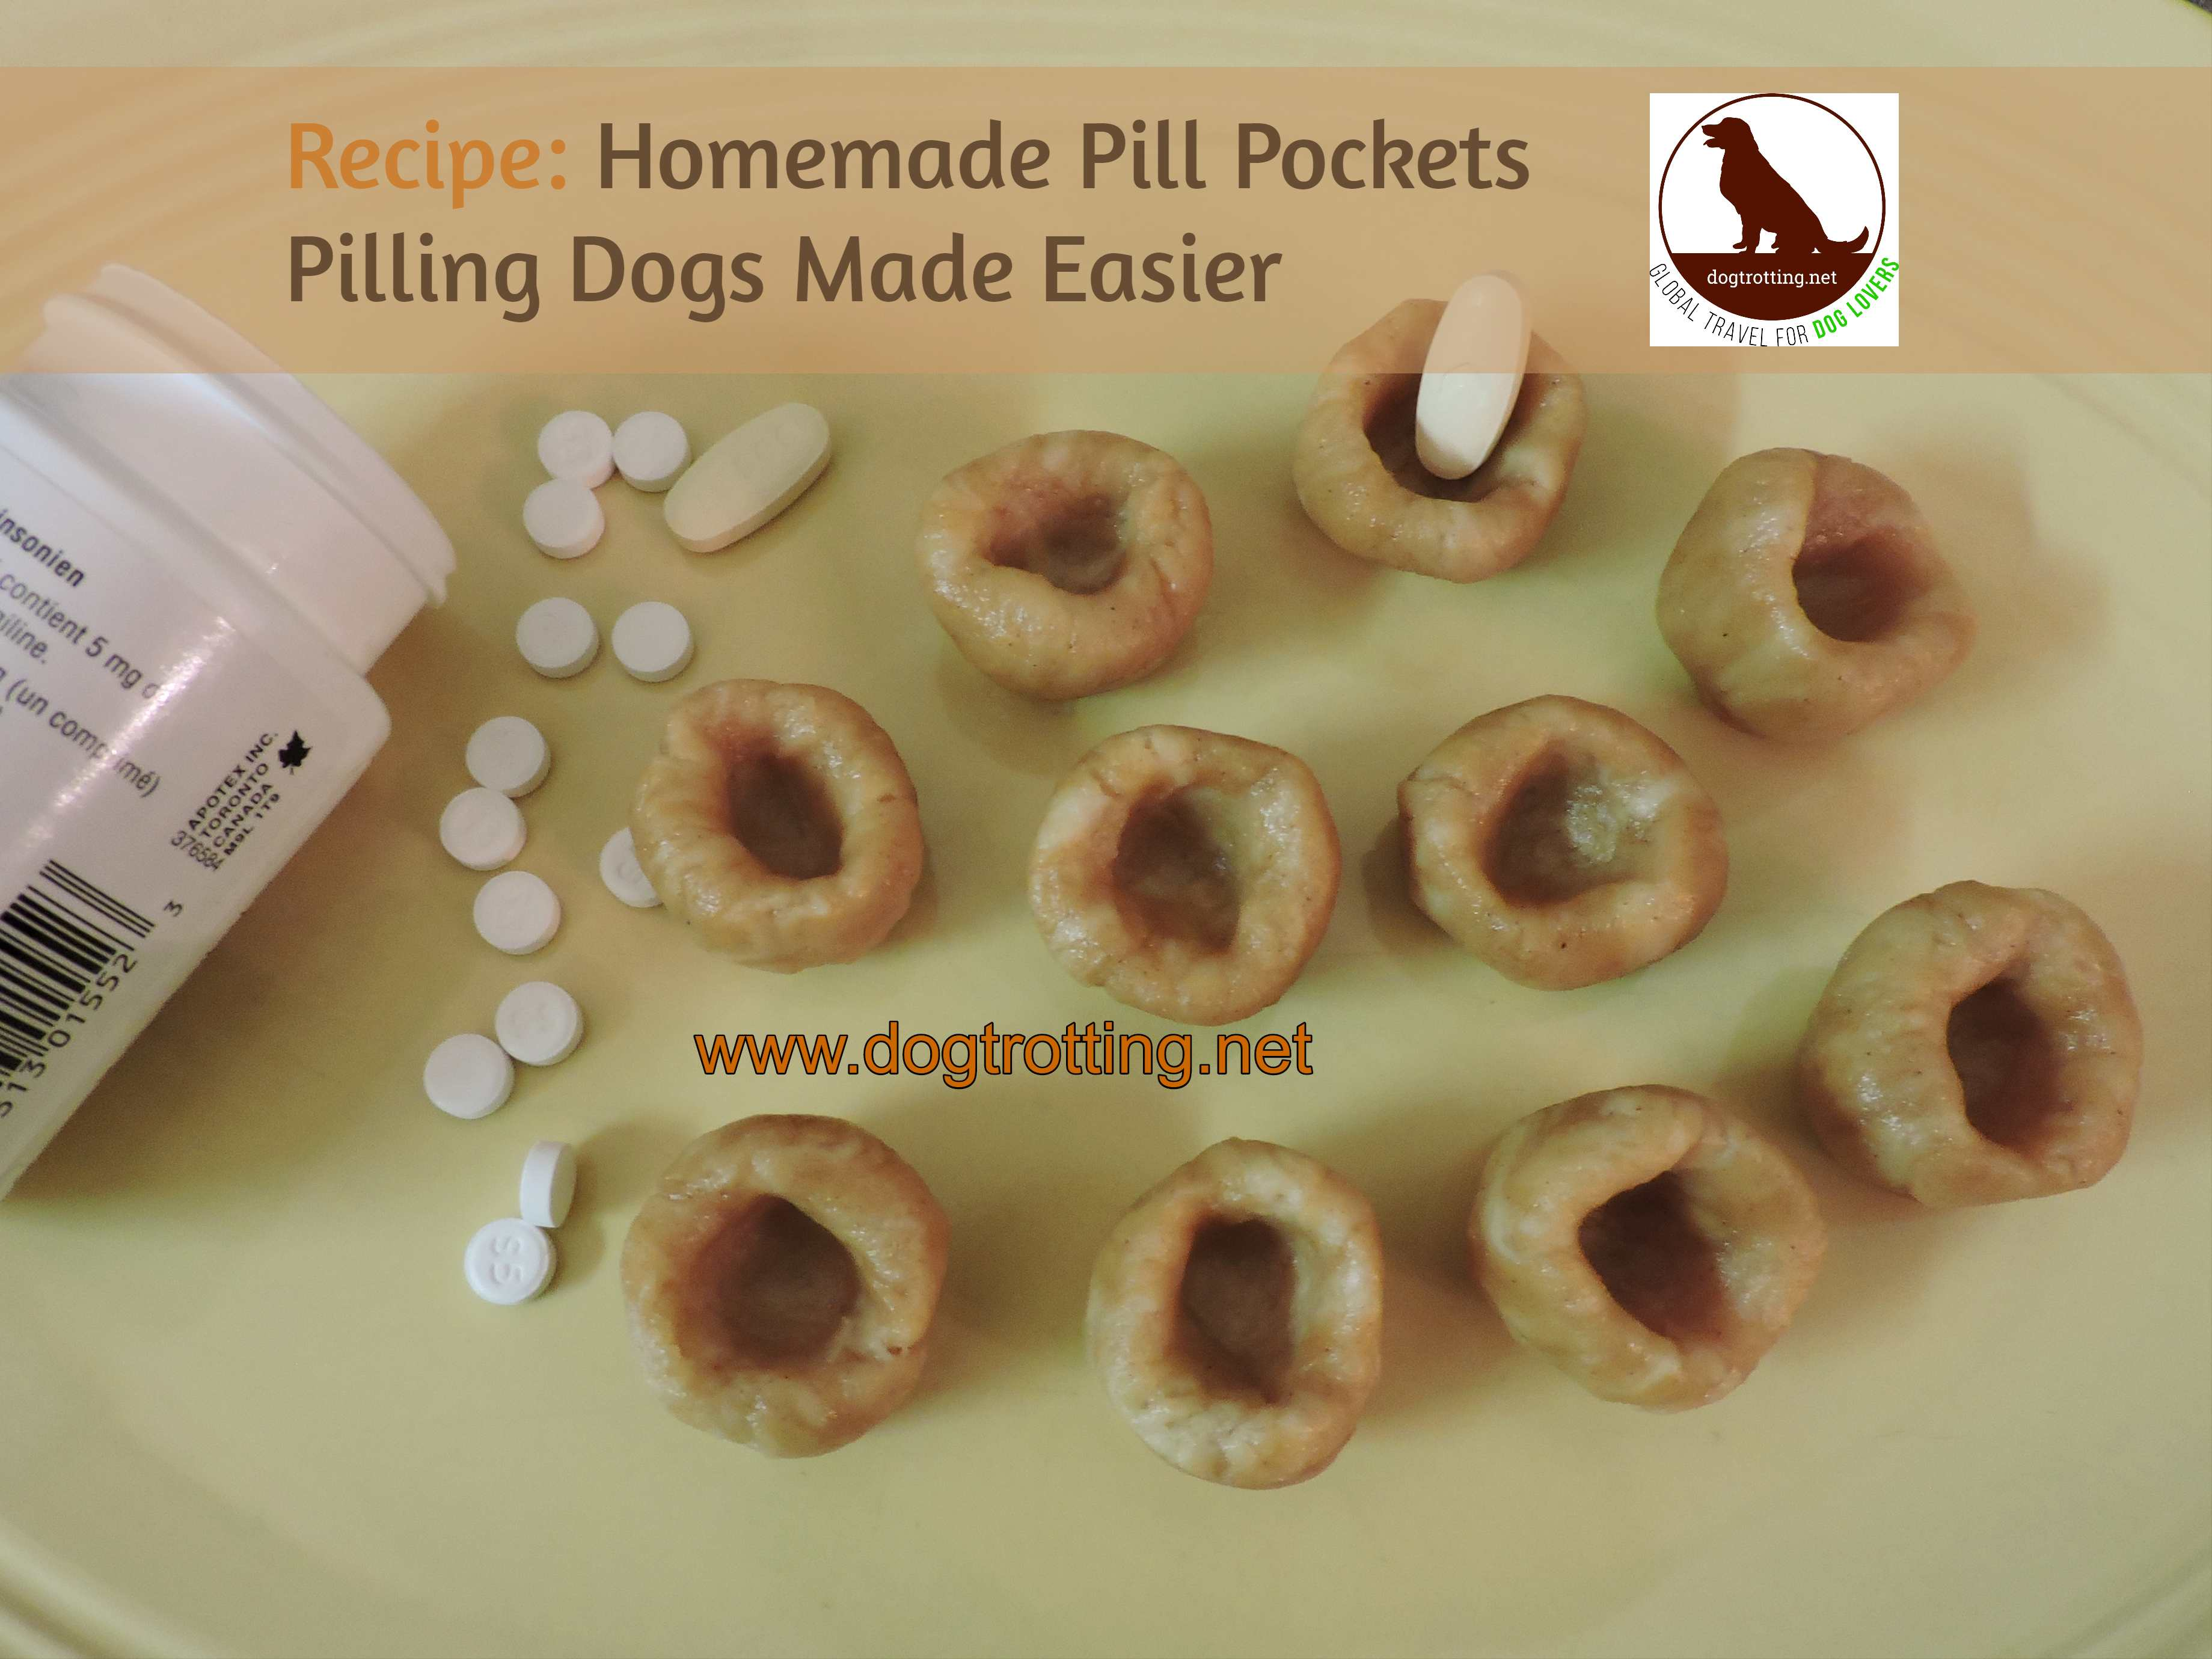 Recipe: Homemade Dog Pill Pockets